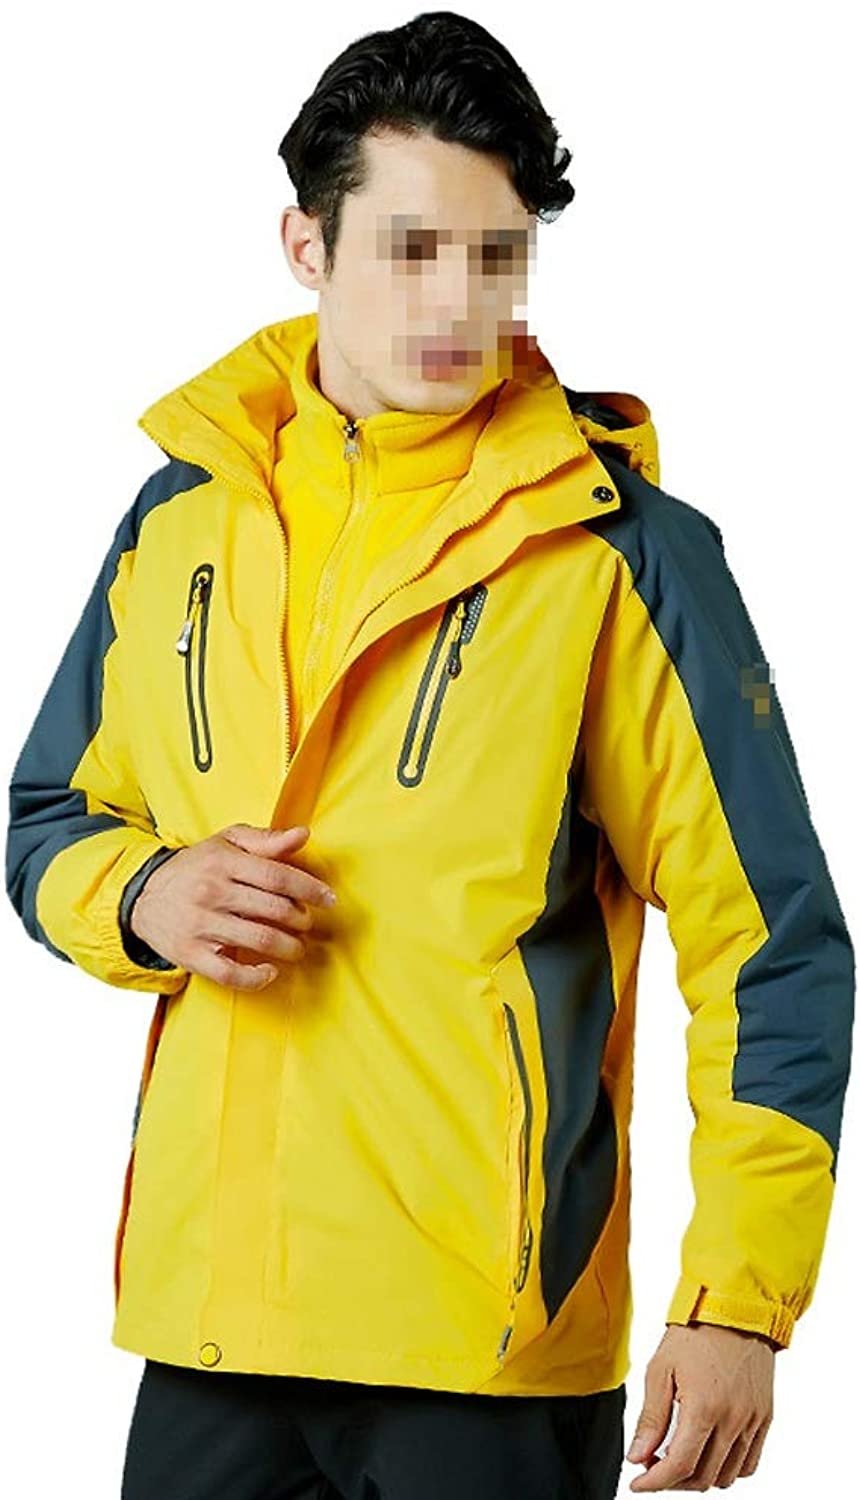 Outdoor Sport Ski Jacket Windproof Hooded with Inner Warm Fleece Coat,Comfortable and Warm